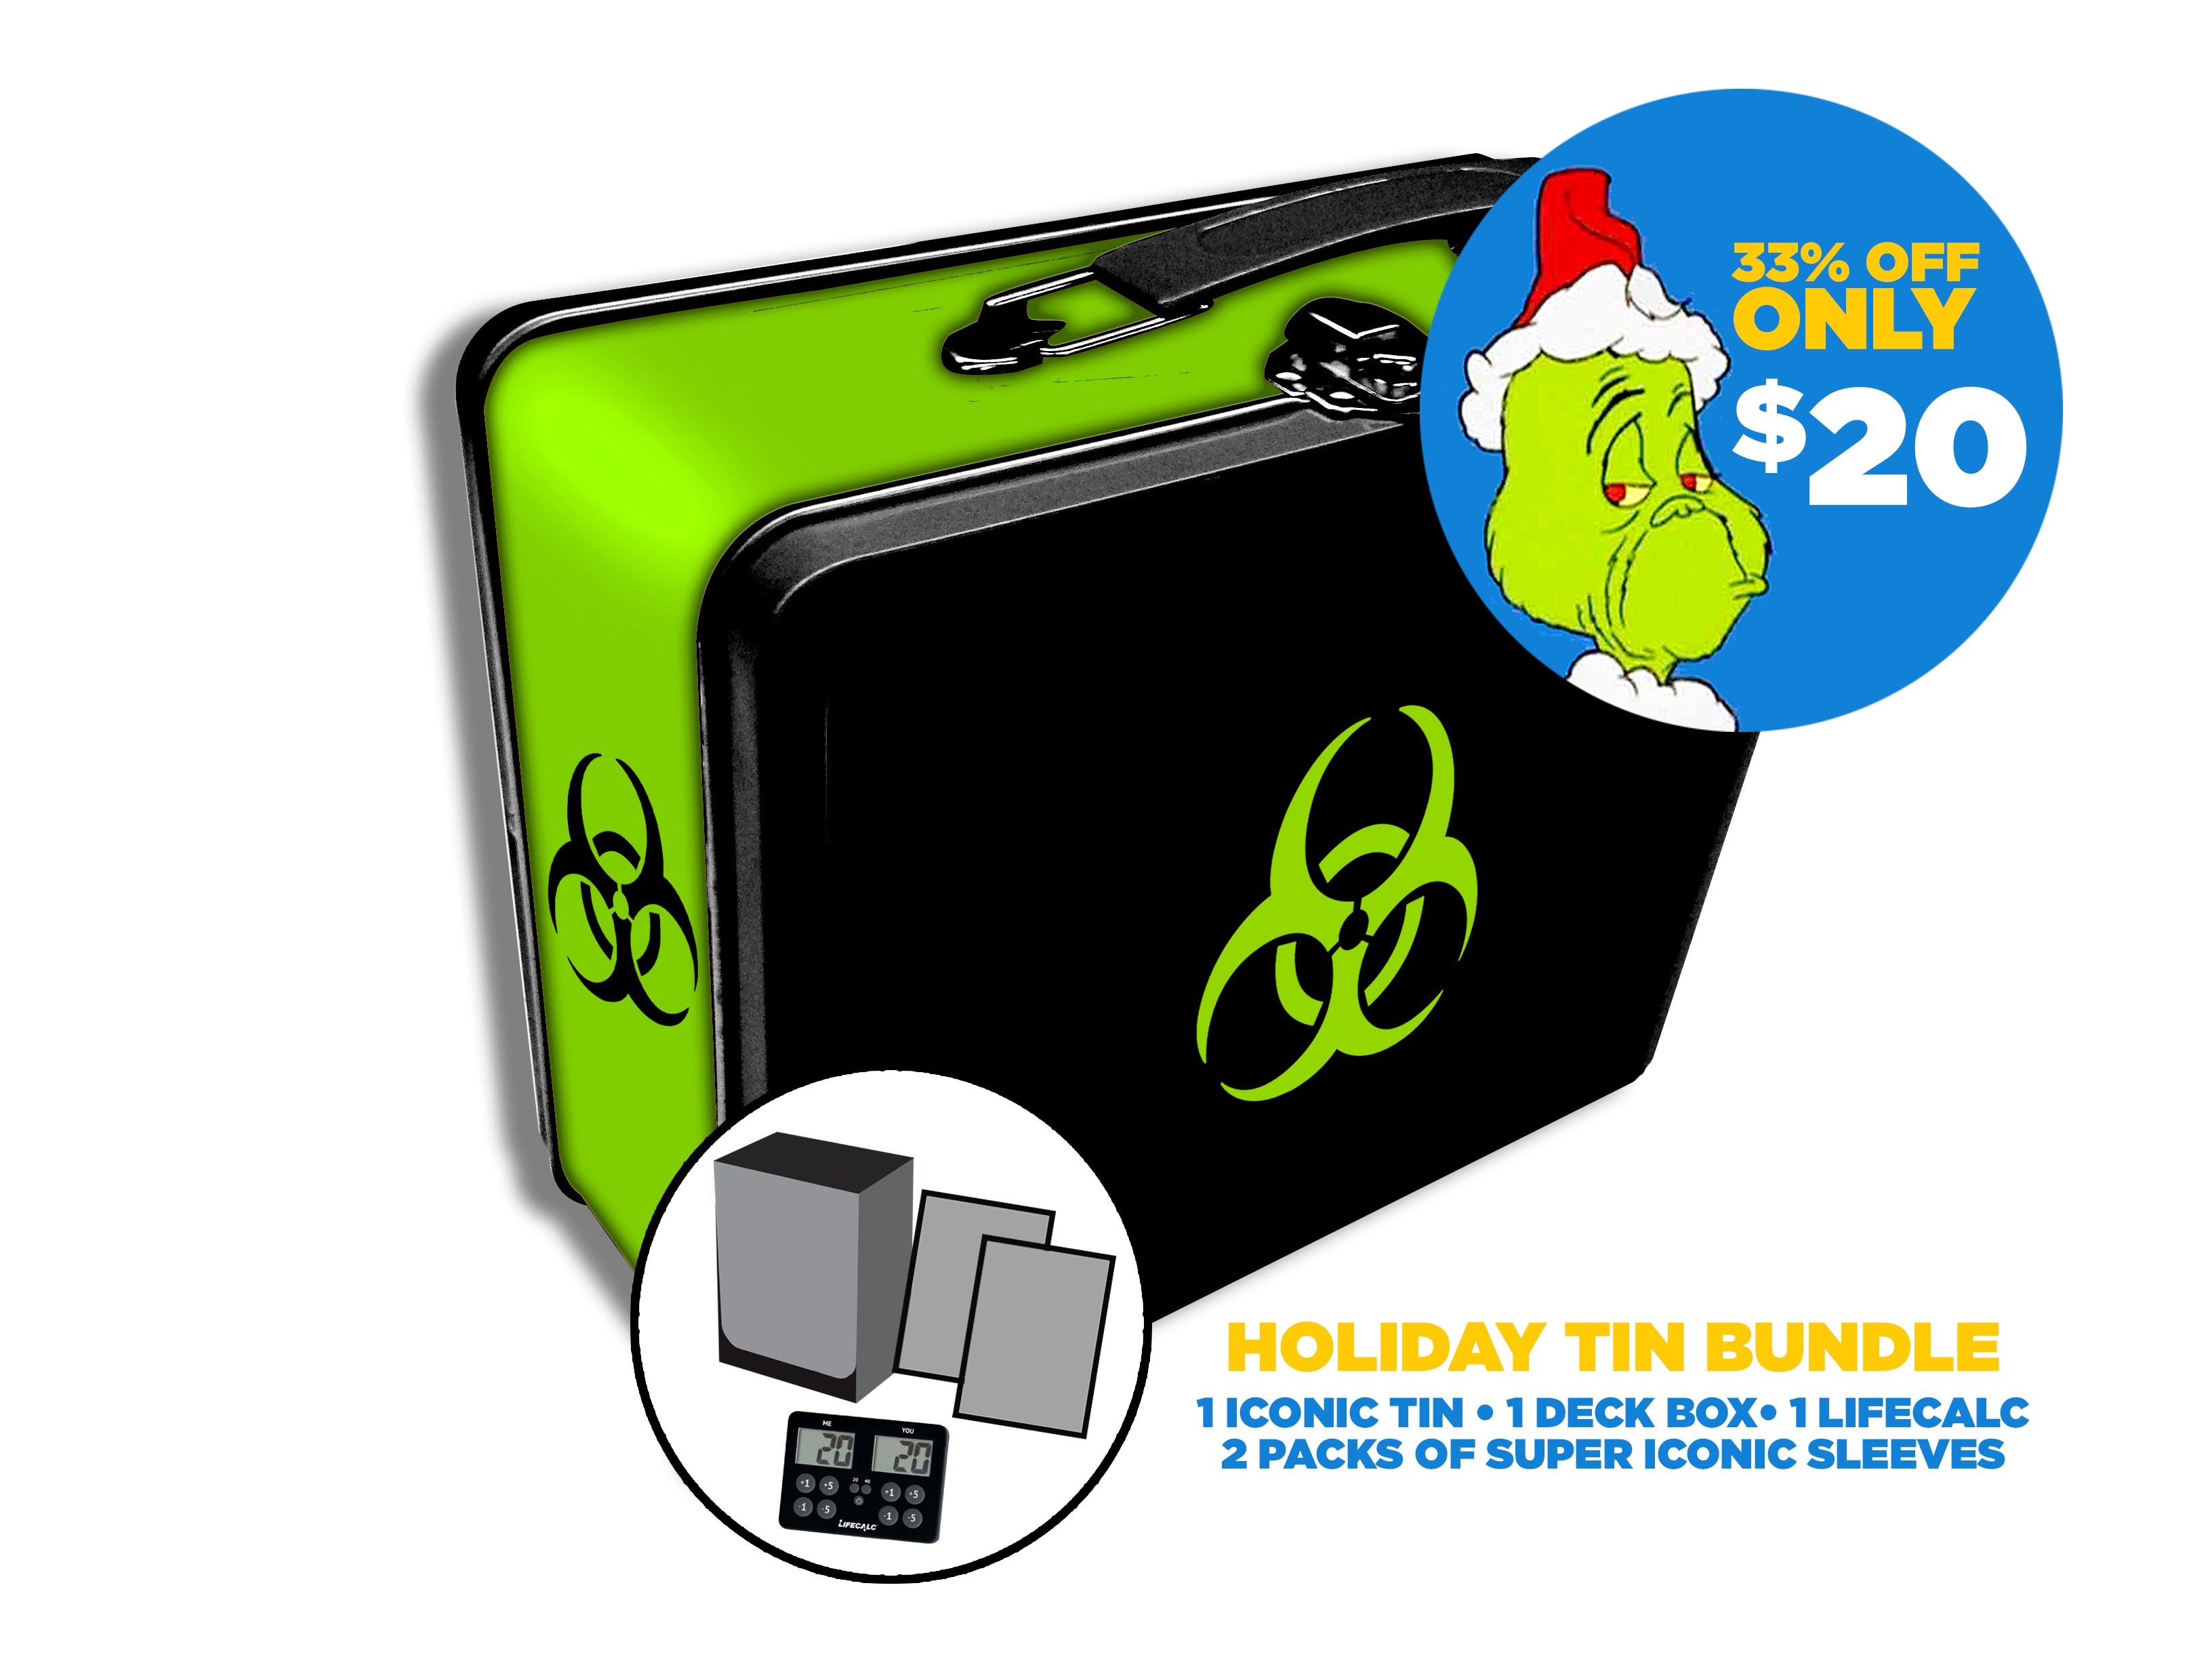 Iconic Bio Holiday Bundle